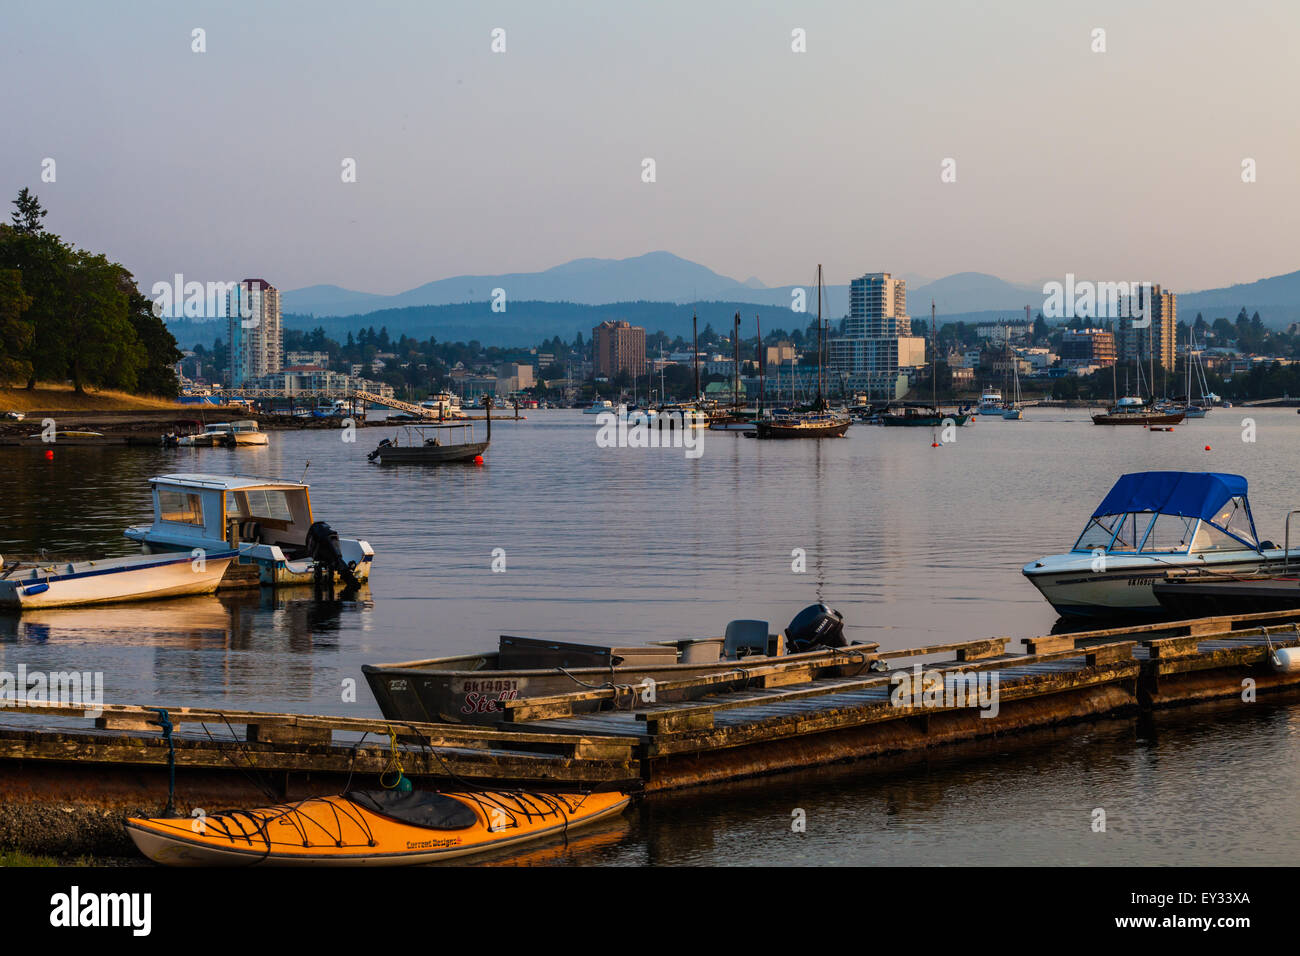 View of the city of Nanaimo from Protection Island, Canada - Stock Image